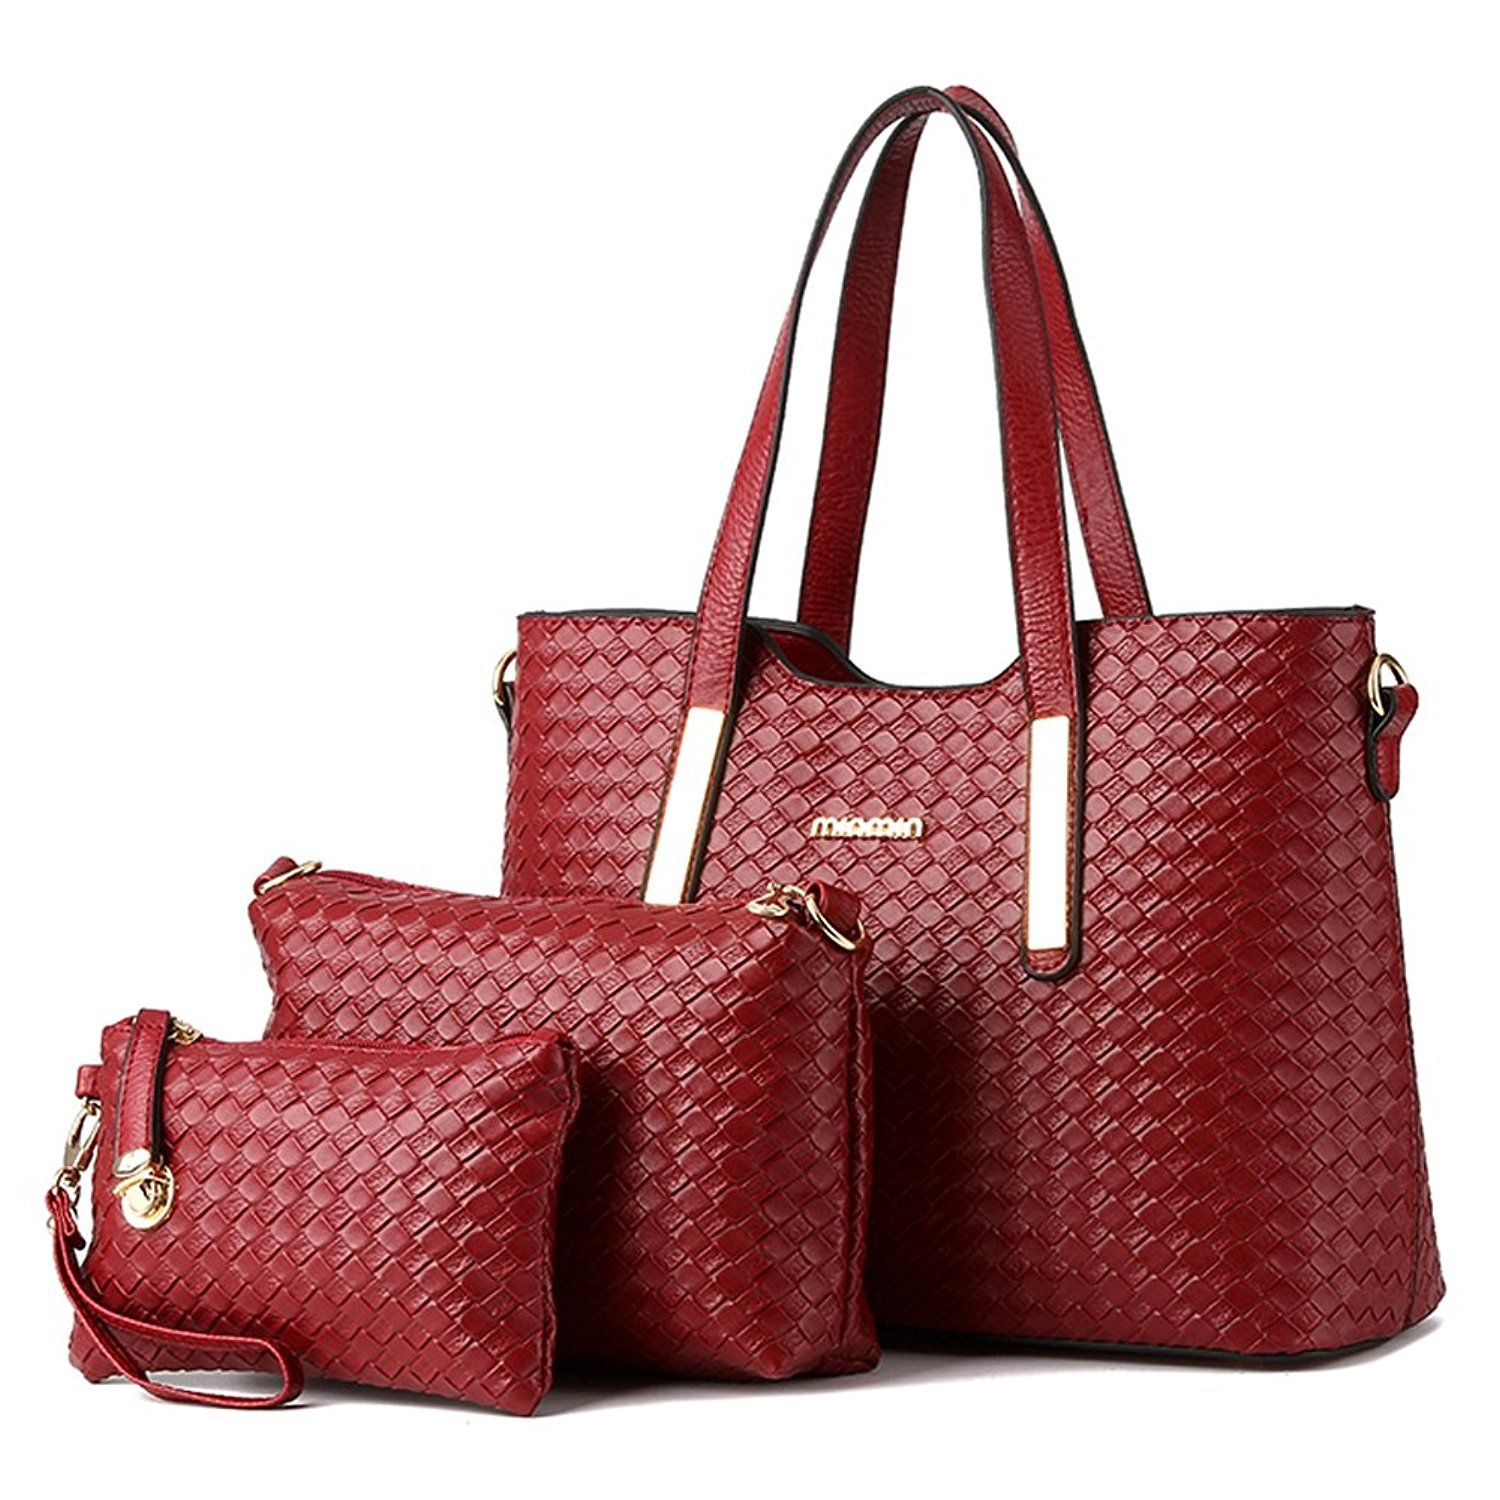 147fc66d54a0 Vincico174 Women 3 Piece Tote Bag Pu Leather Weave Handbag Shoulder Purse  Bags